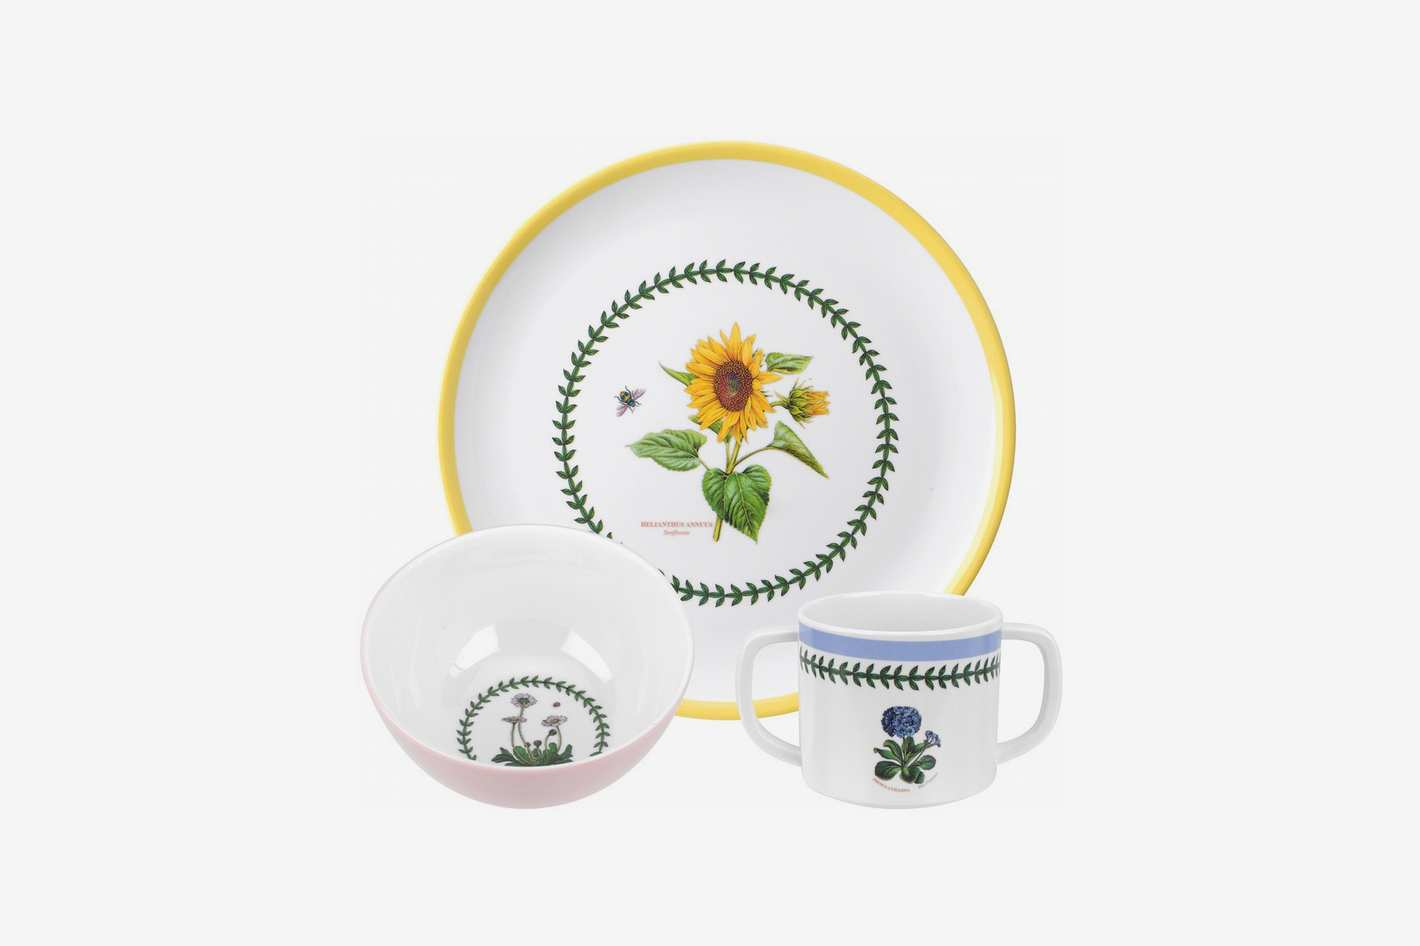 Portmeirion Botanic Garden 3 Piece Childrens Melamine Set